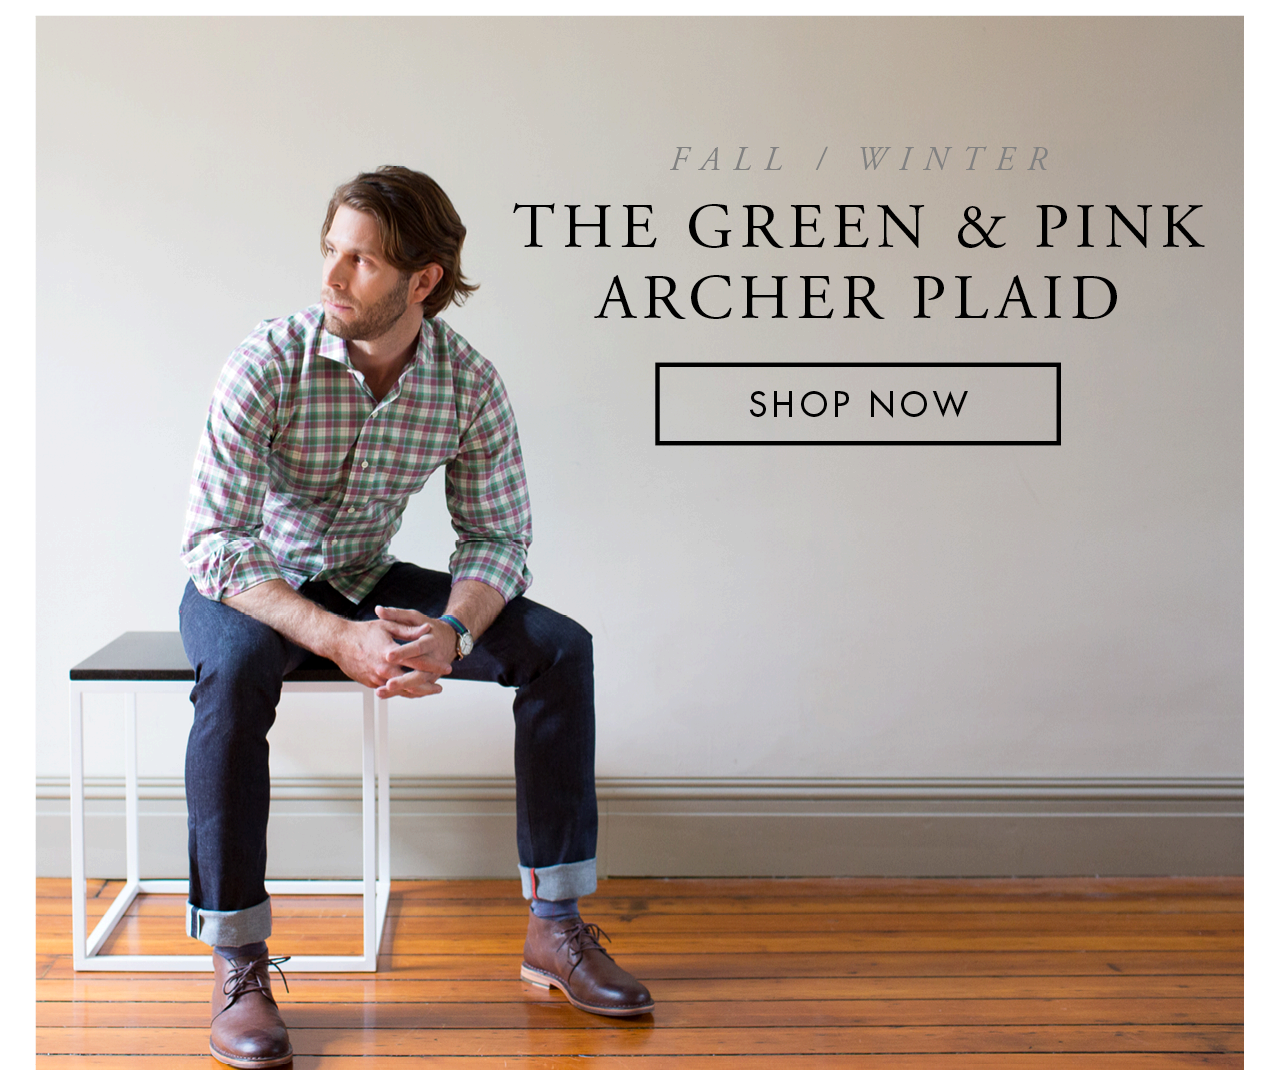 The Green and Pink Archer Plaid